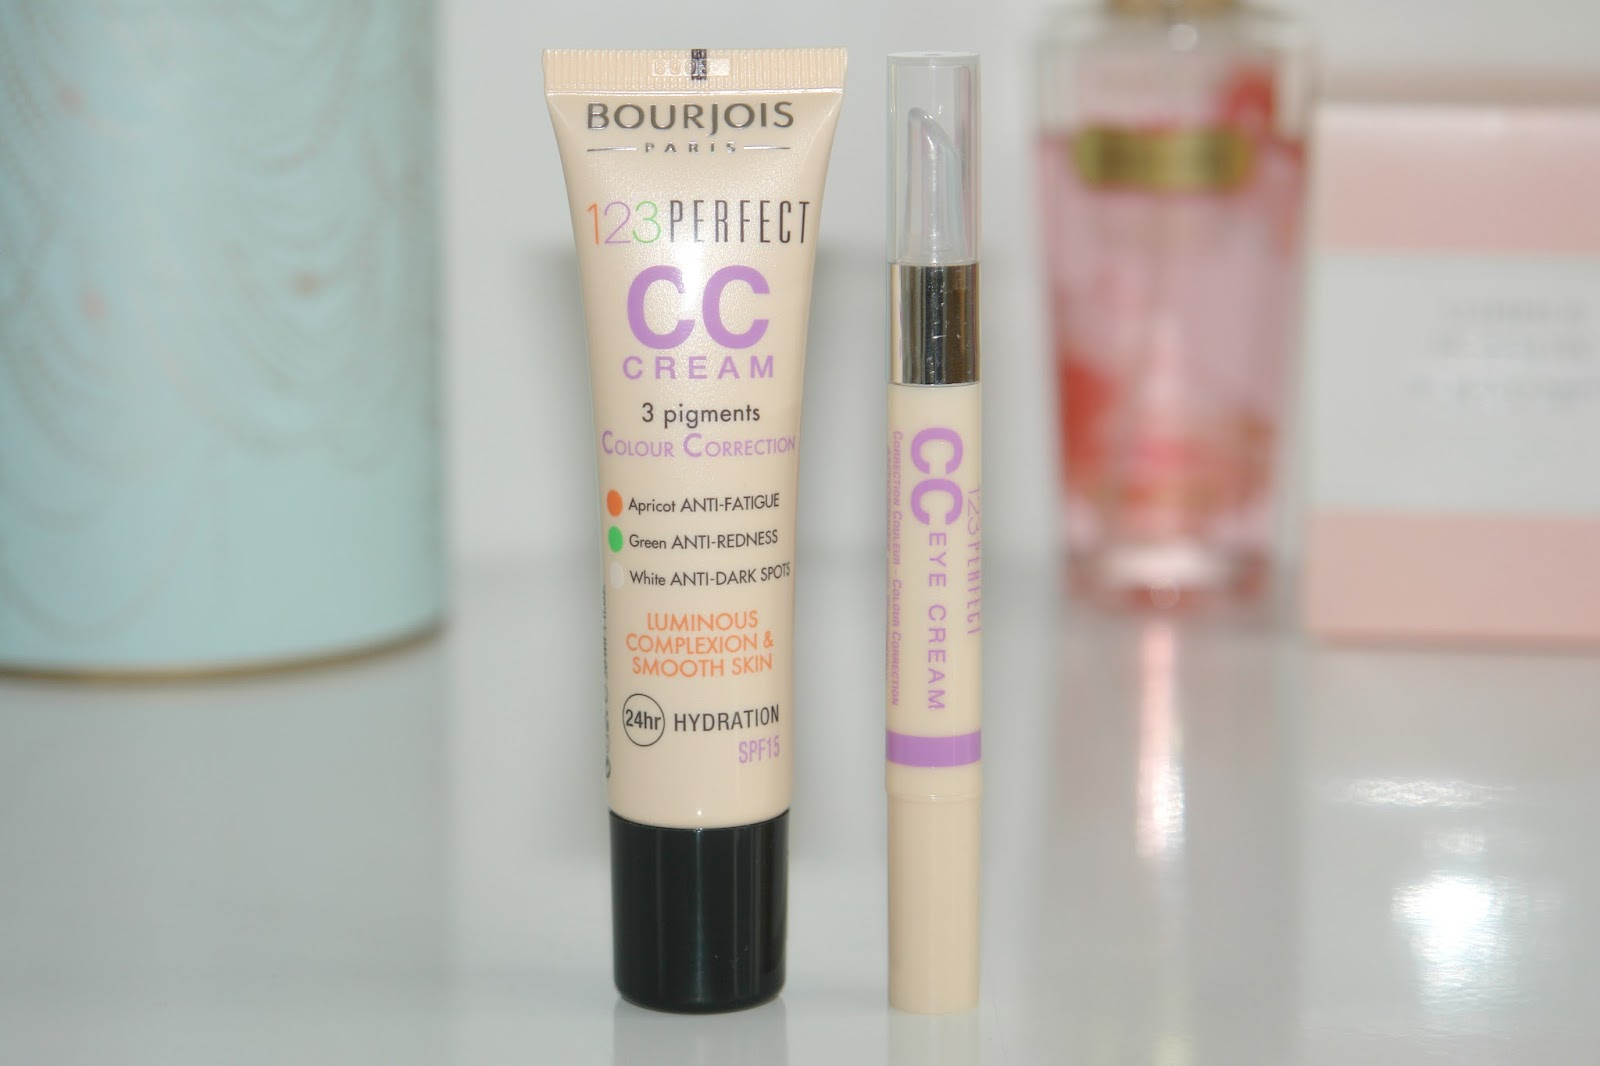 Bourjois 123 Perfect CC Cream and Eye Cream, Bourjois, concealer, foundation, make up, review, beauty, blogger, UK, Bourjois 123 Perfect Colour Correcting Cream, Bourjois 123 Perfect CC Eye Cream Concealer